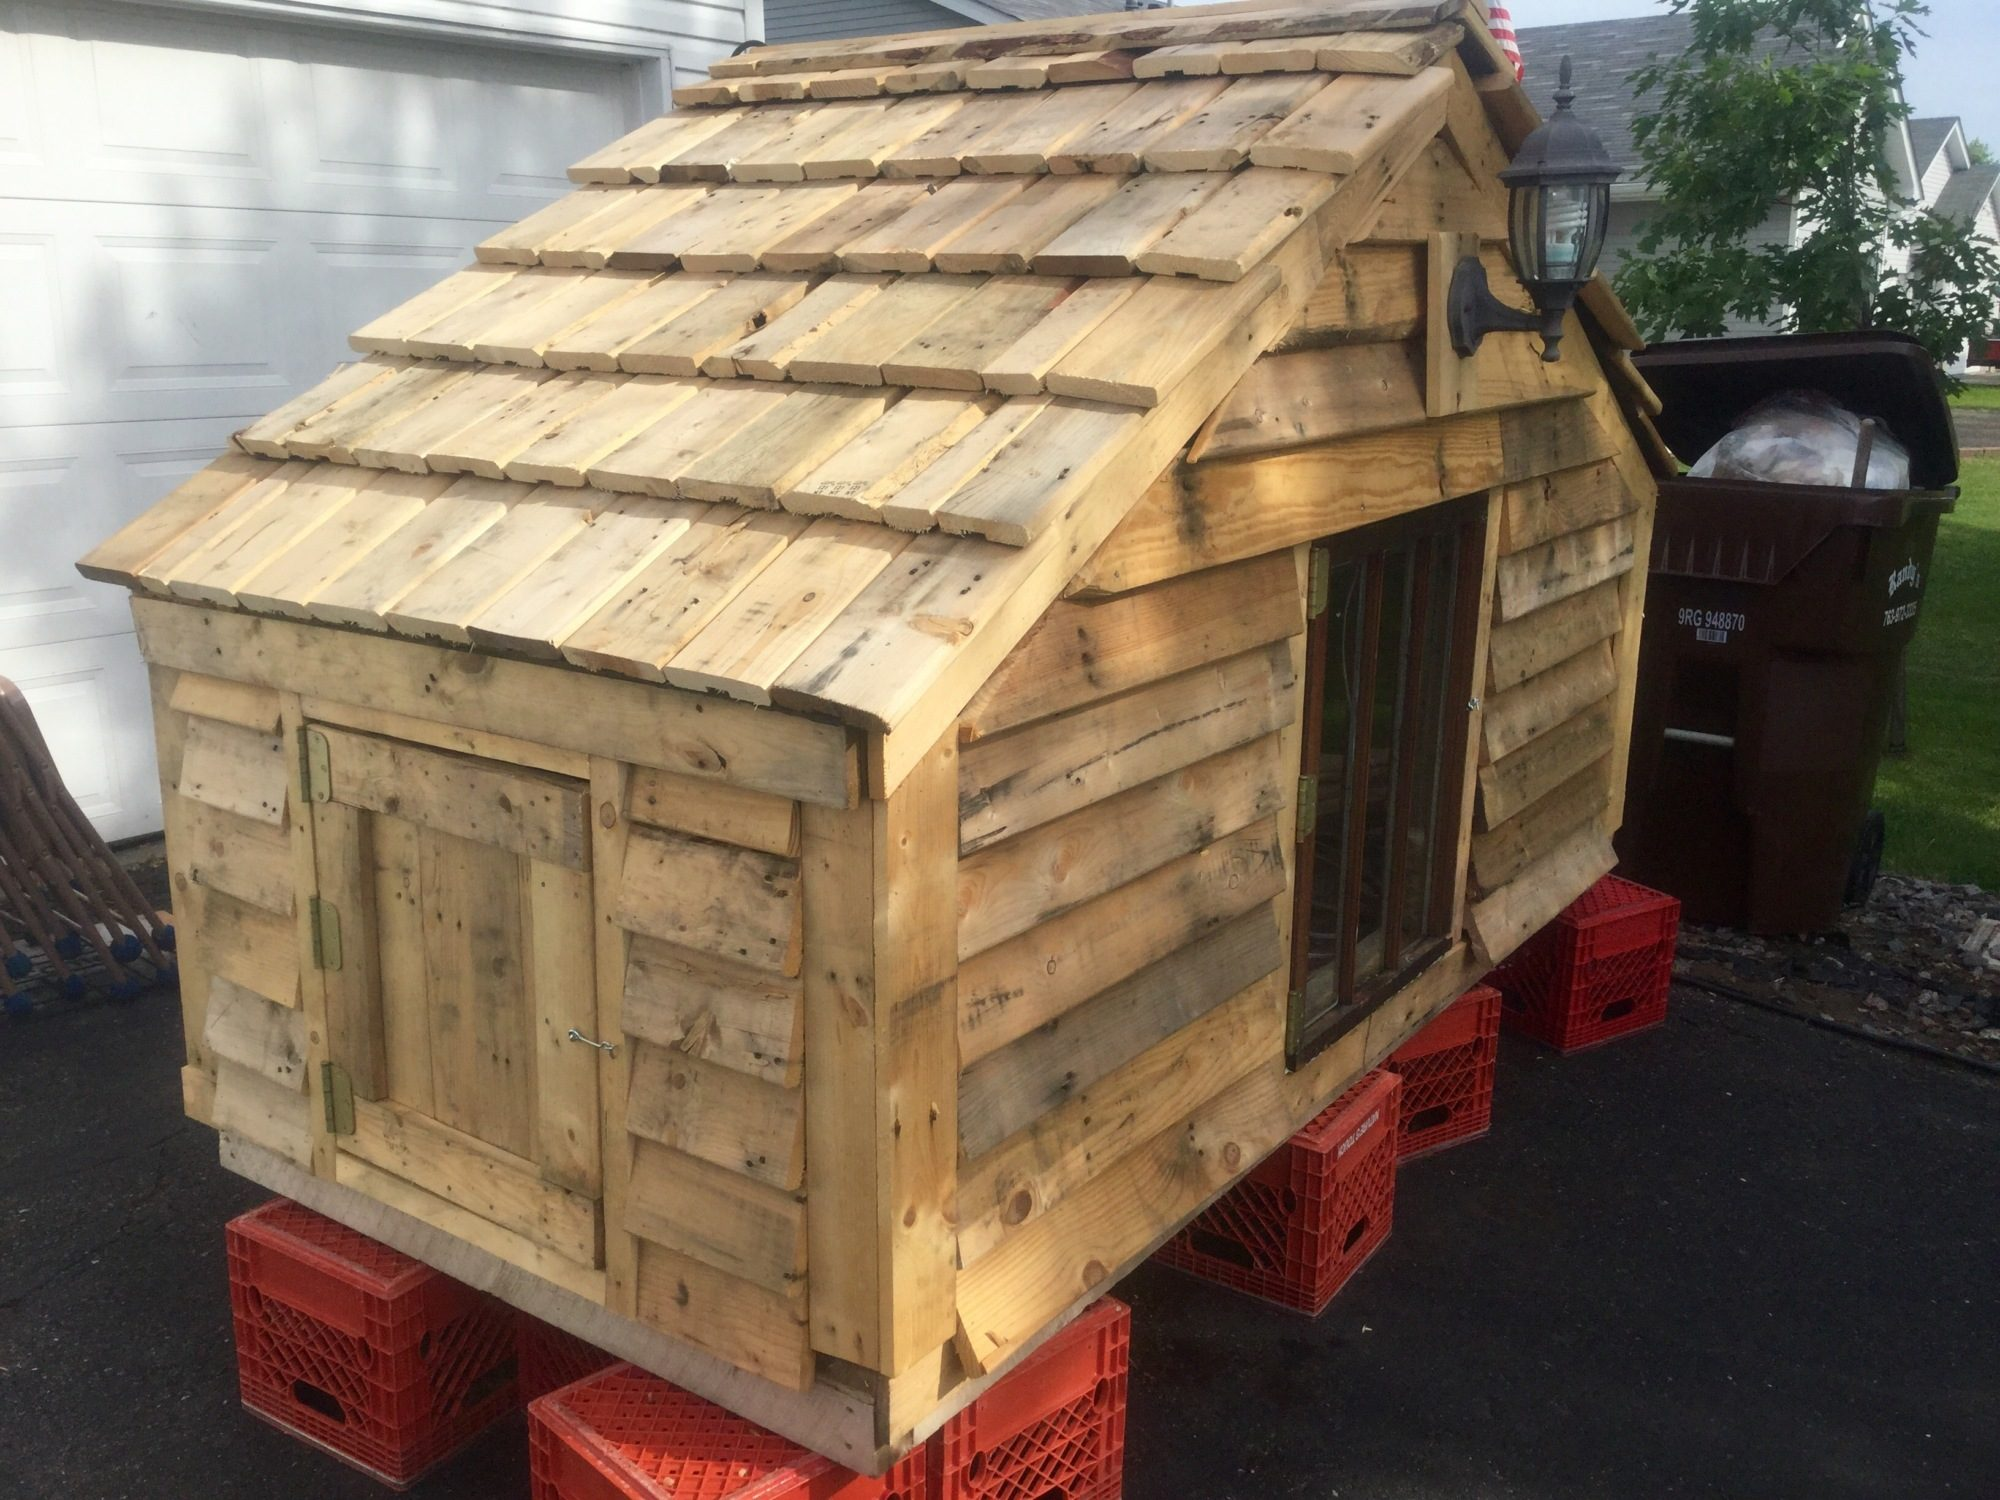 Chicken coop made from pallets. There's a light on the front and swing doors to check eggs on the ends. I found 2 antique doors for natural light front and back. There is electricity on the inside; outlet and light.